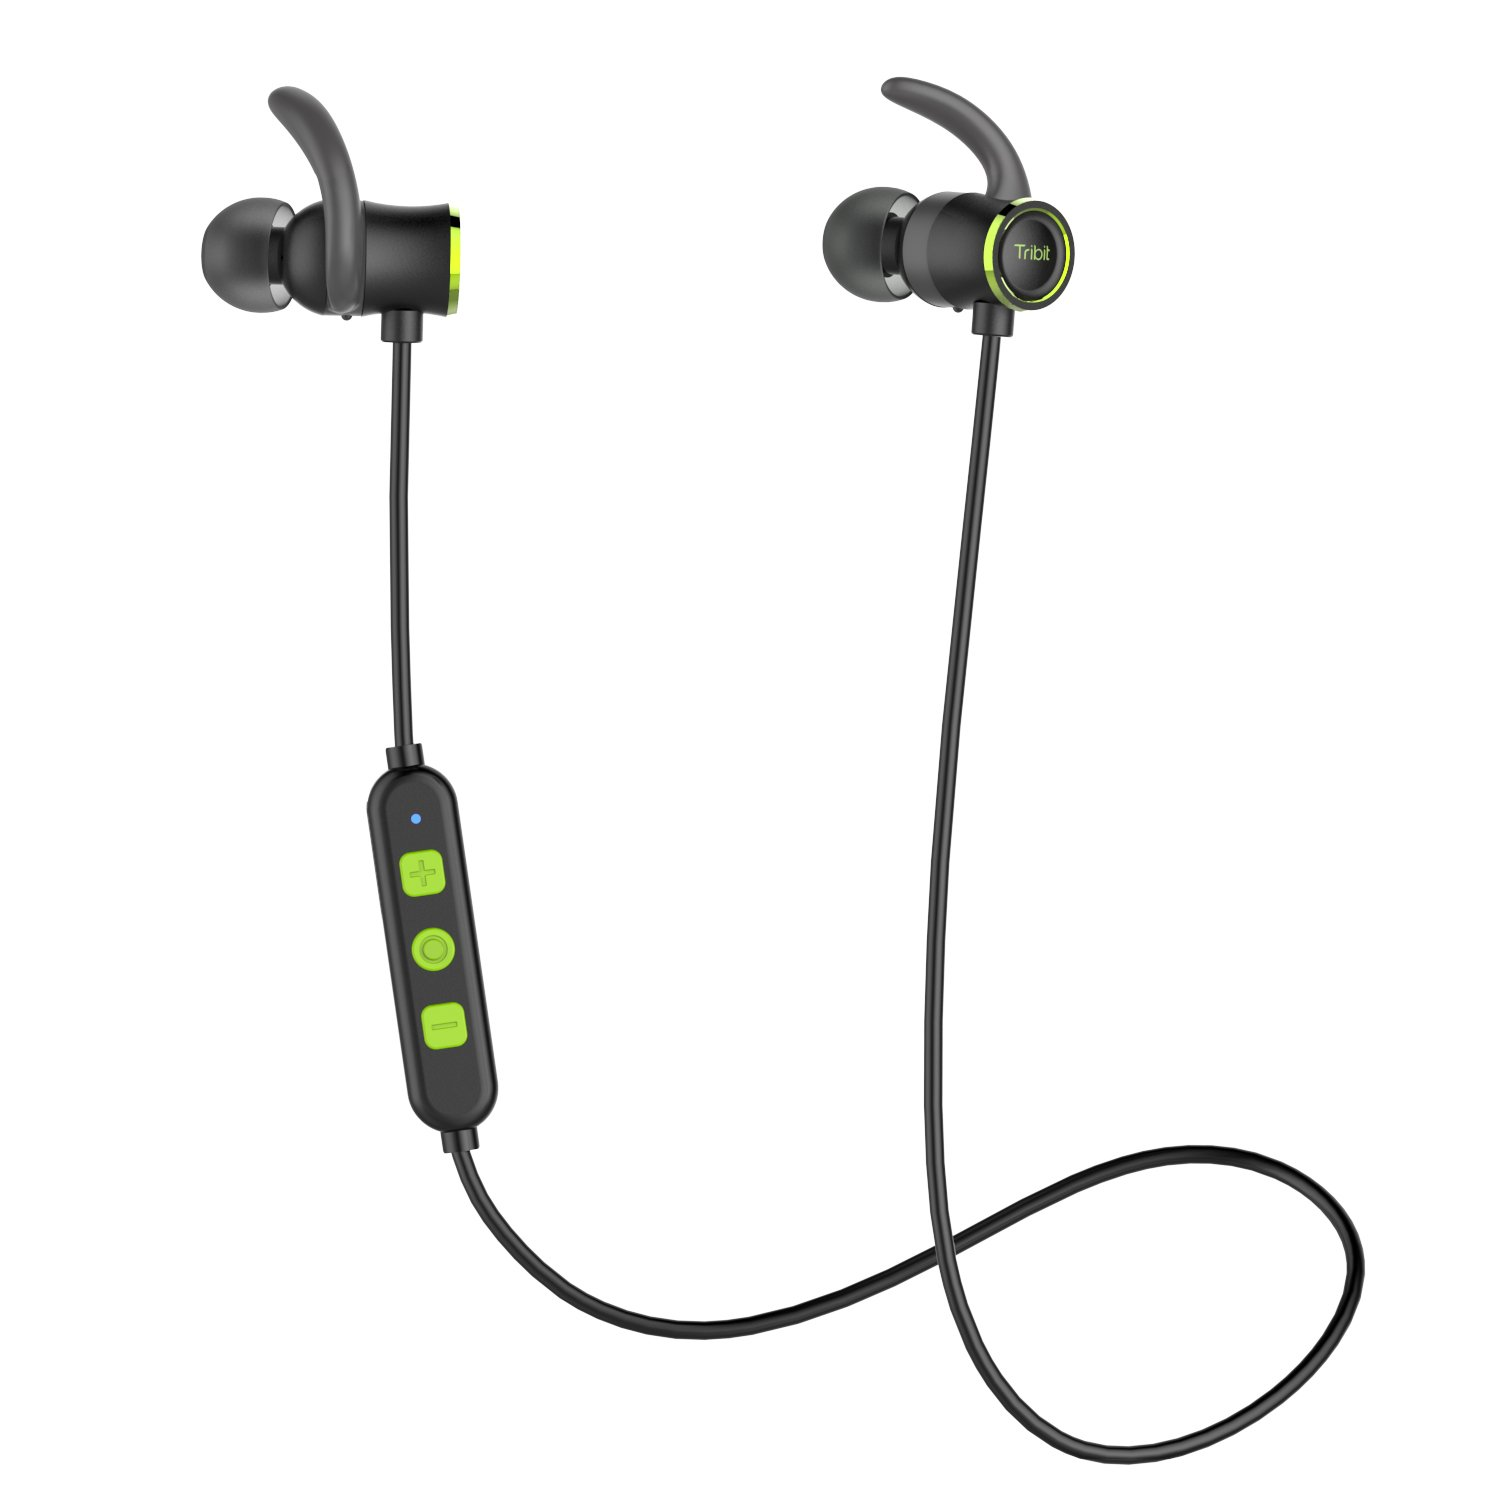 4c95b7c9454c1a Tribit Bluetooth Earbuds with Microphone - Wireless Earbuds Running  Headphones Crystal Clear Sound, Nano Coating Waterproof, Up to 10 Hrs  Playtime - Sports ...